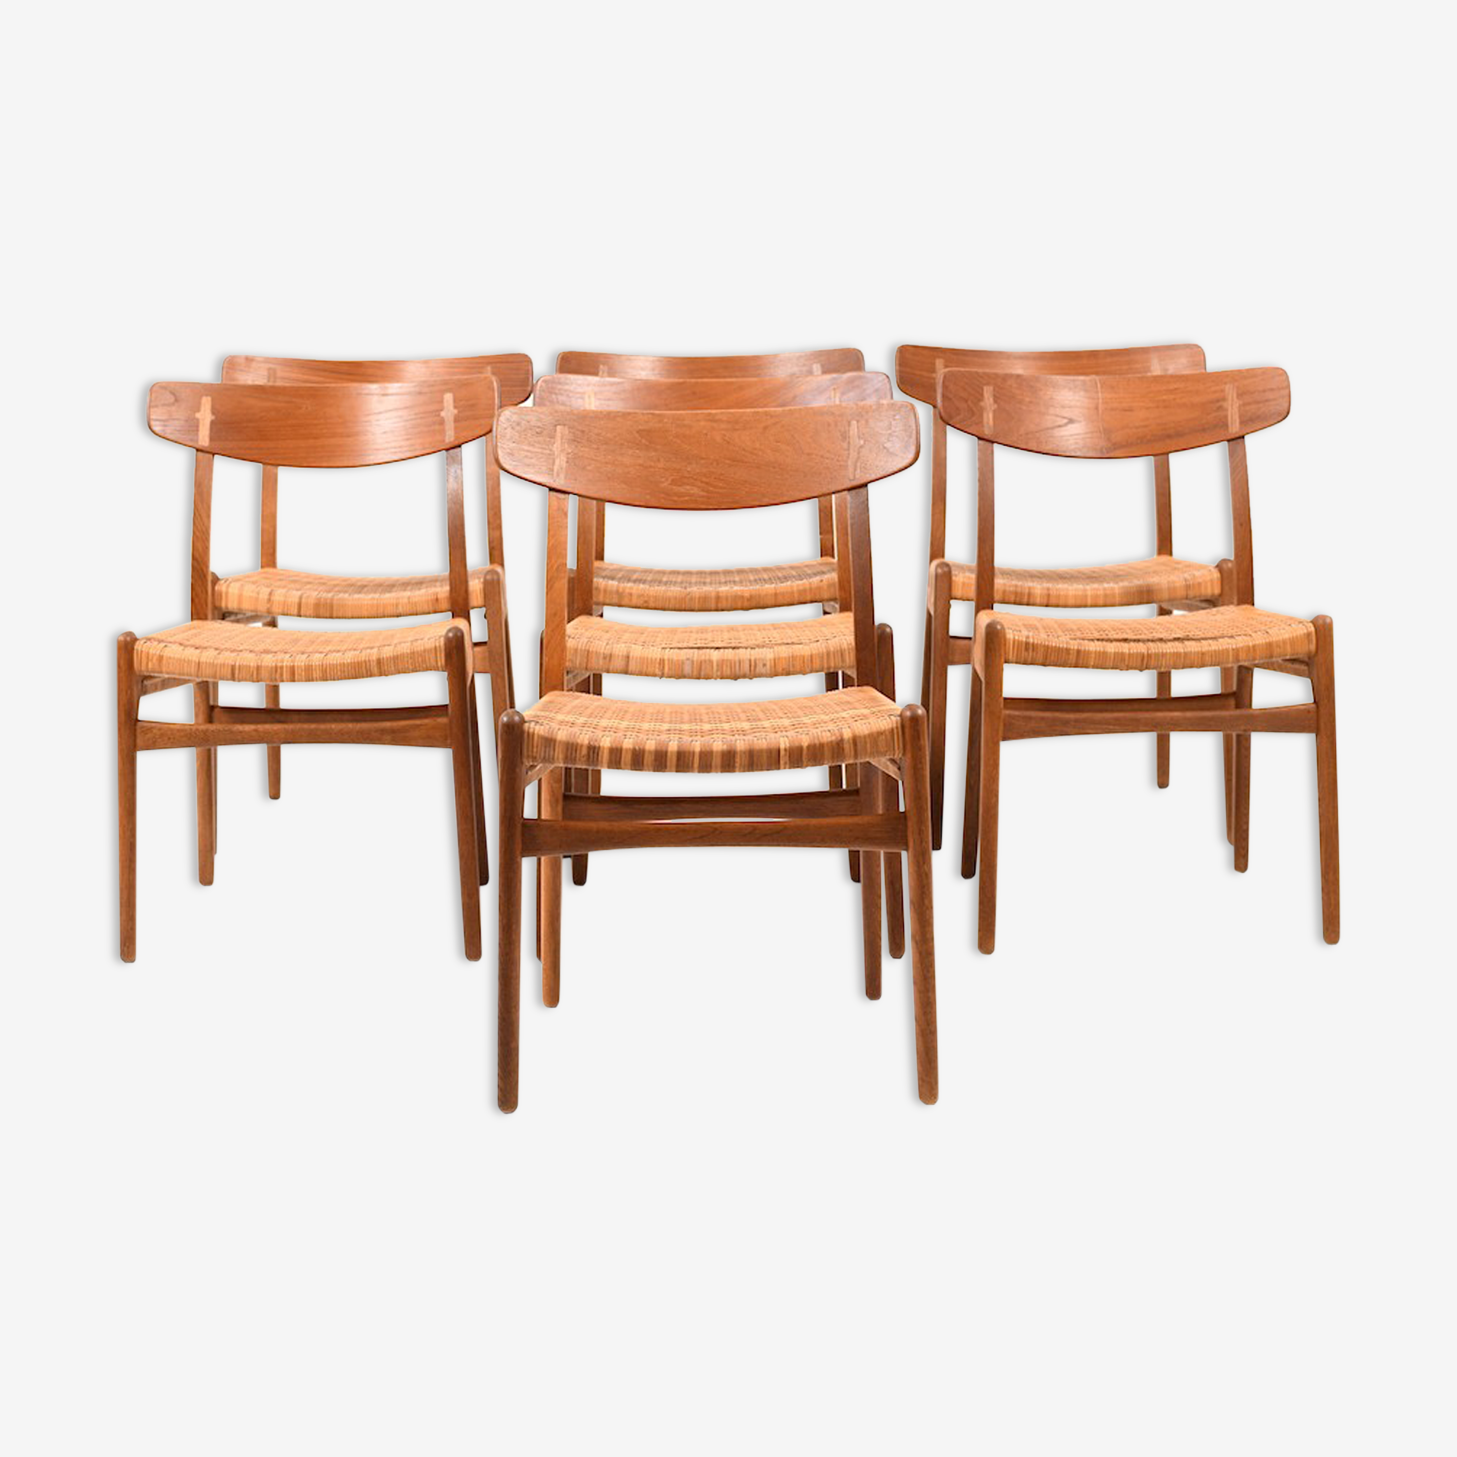 Chairs by Hans J Wegner for Carl Hansen & Son